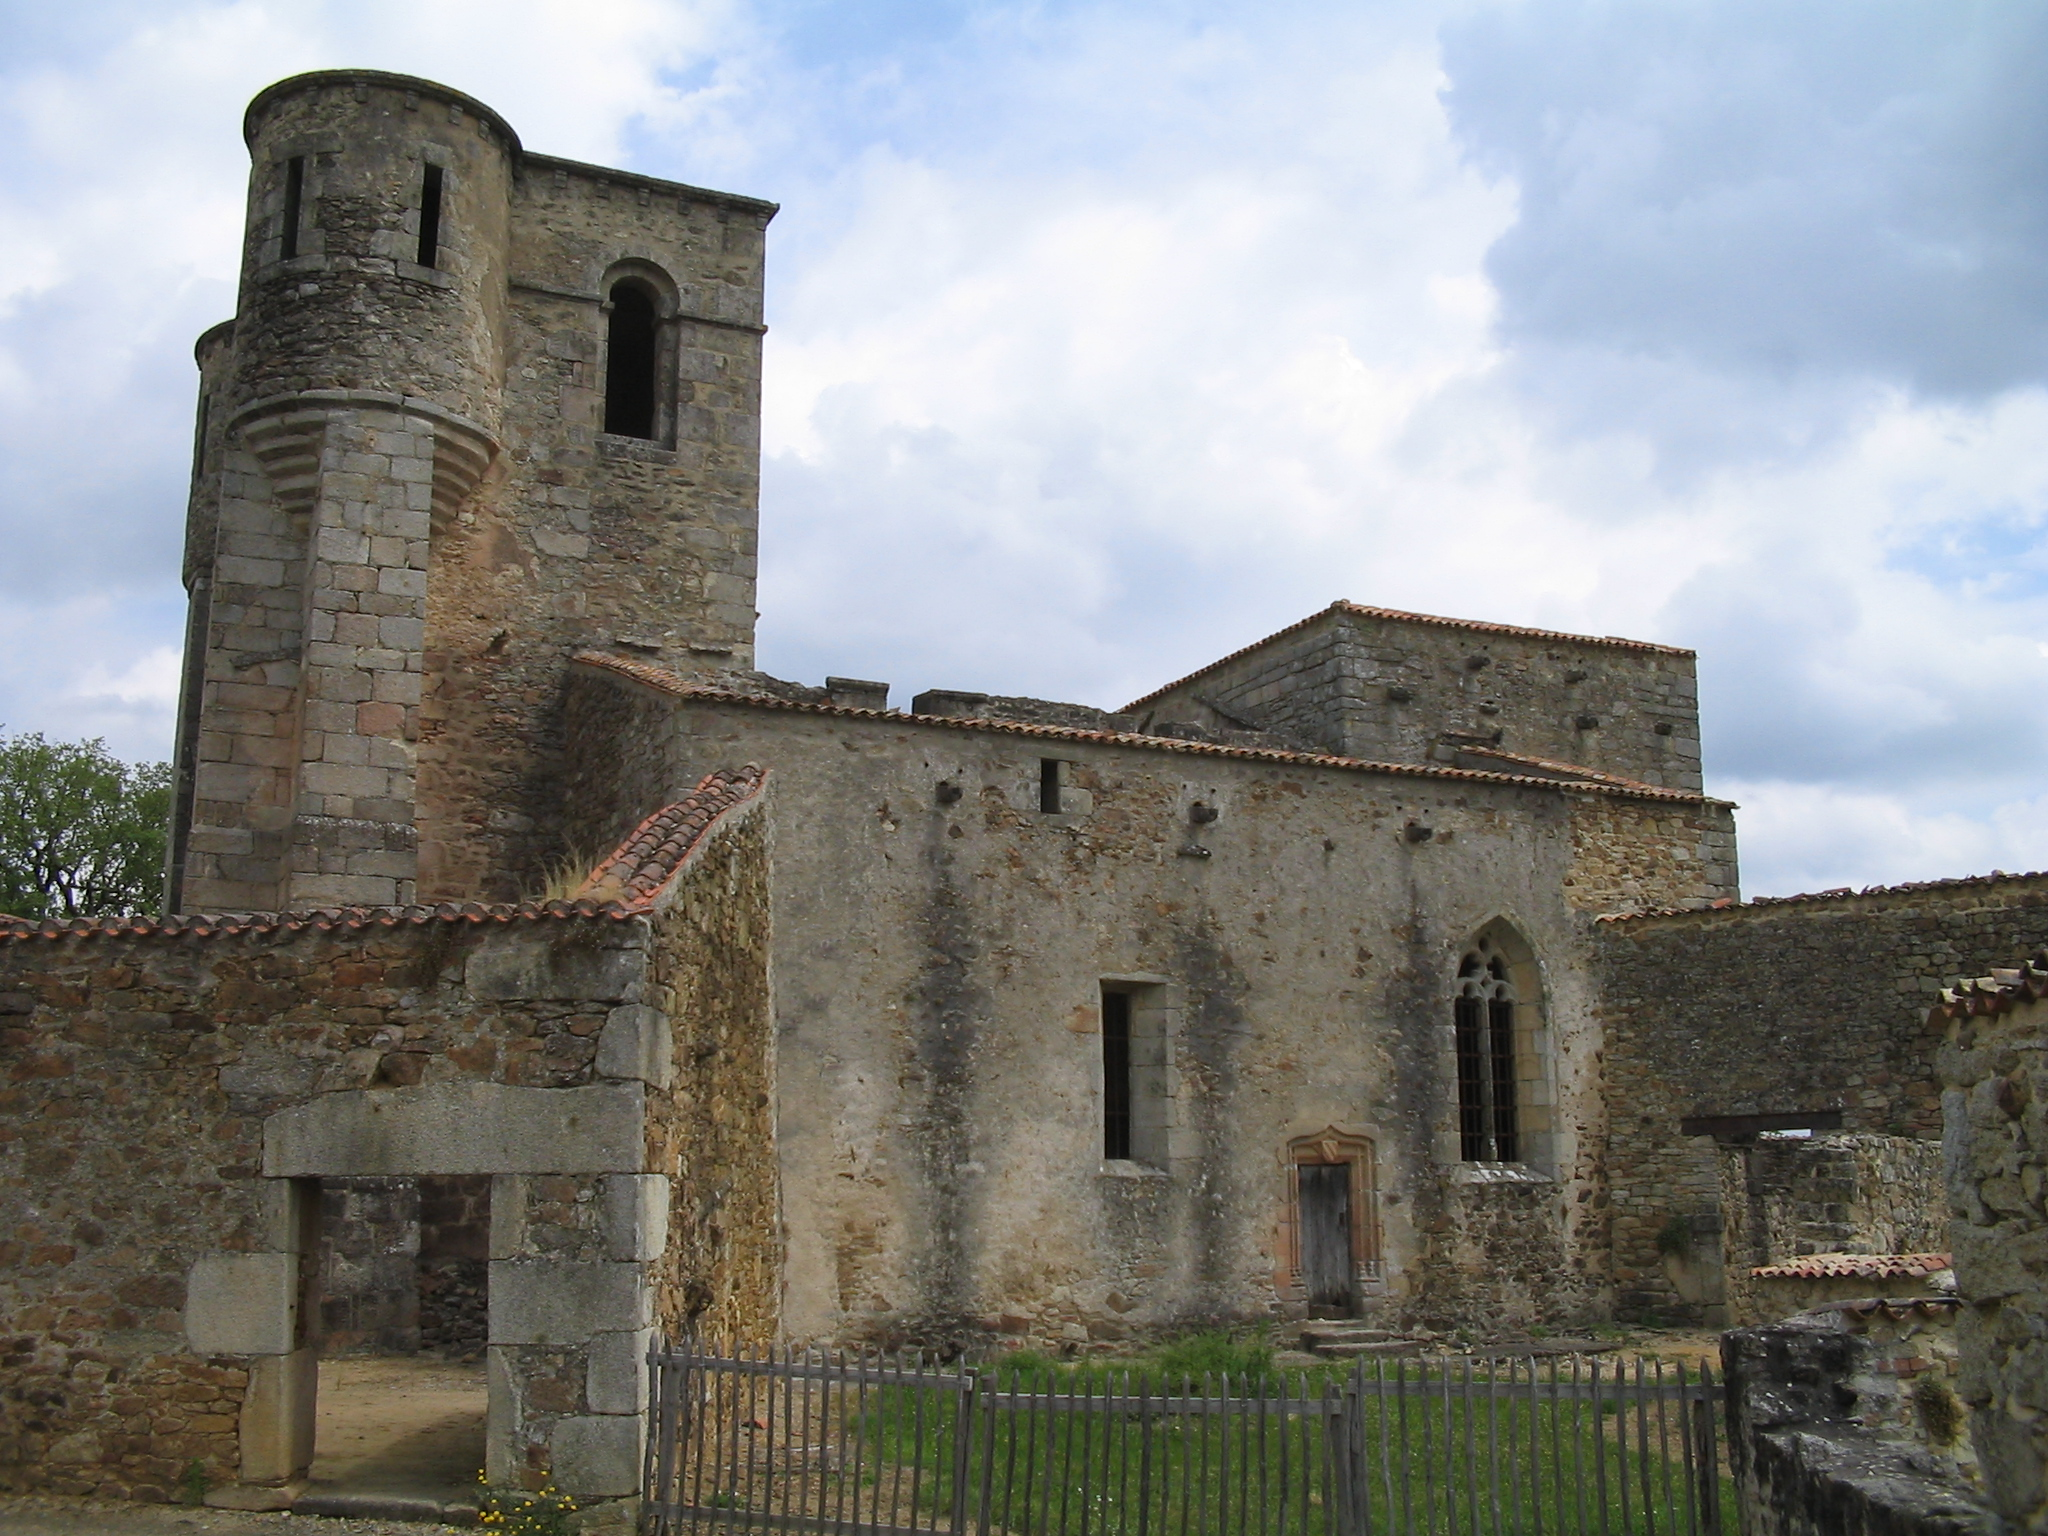 http://upload.wikimedia.org/wikipedia/commons/4/45/Oradour-sur-Glane-Church-1275.jpg